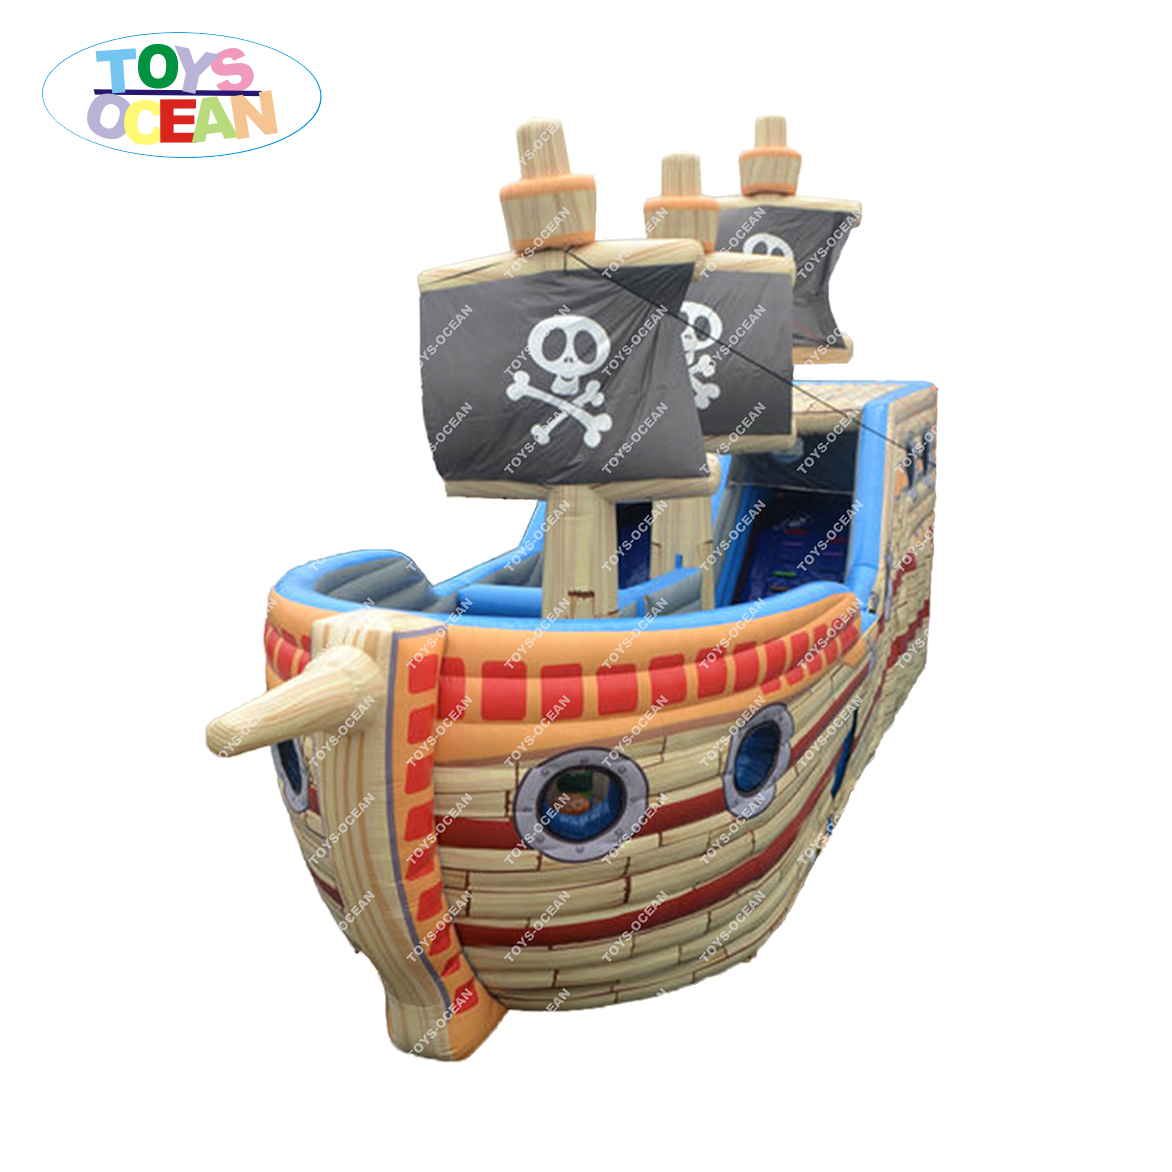 Cheap Adult Inflatable Pirate Ship Playground Jumping Castle Obstacle Slide Course